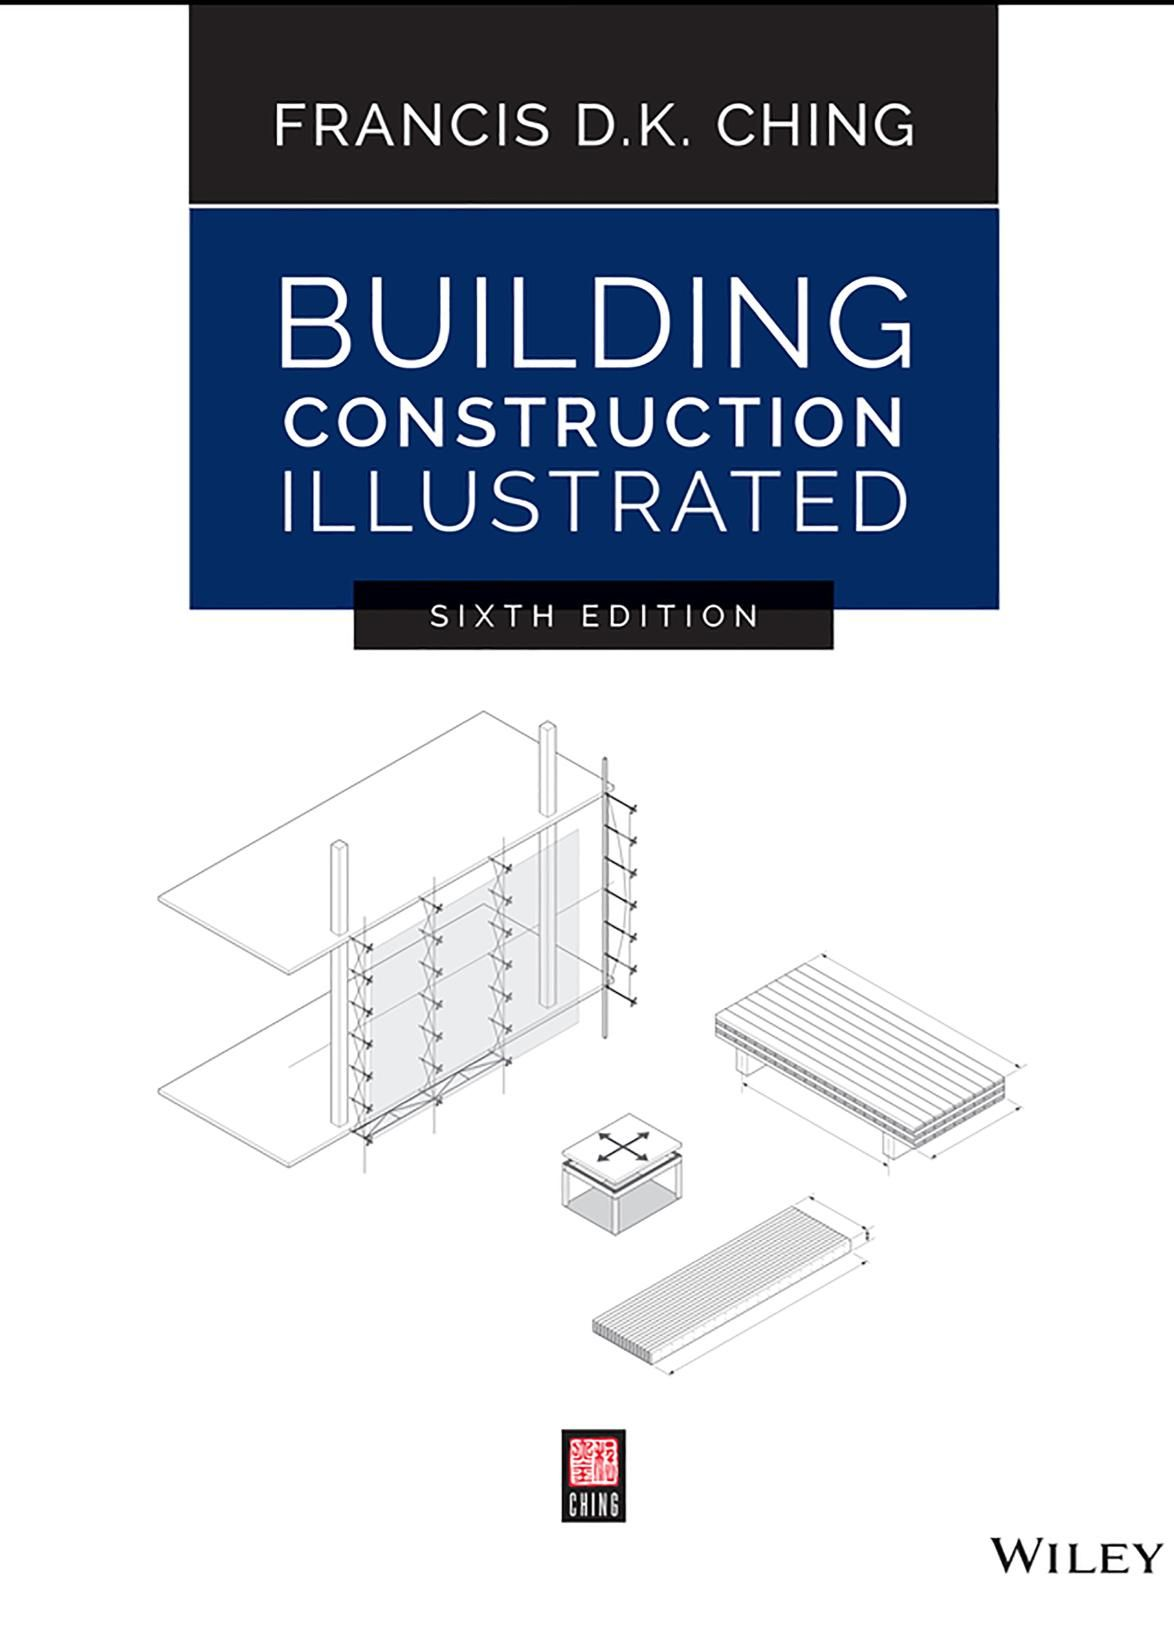 Building Construction Illustrated 6th Edition Pdf Ebook Building Construction Commercial Construction Building Design